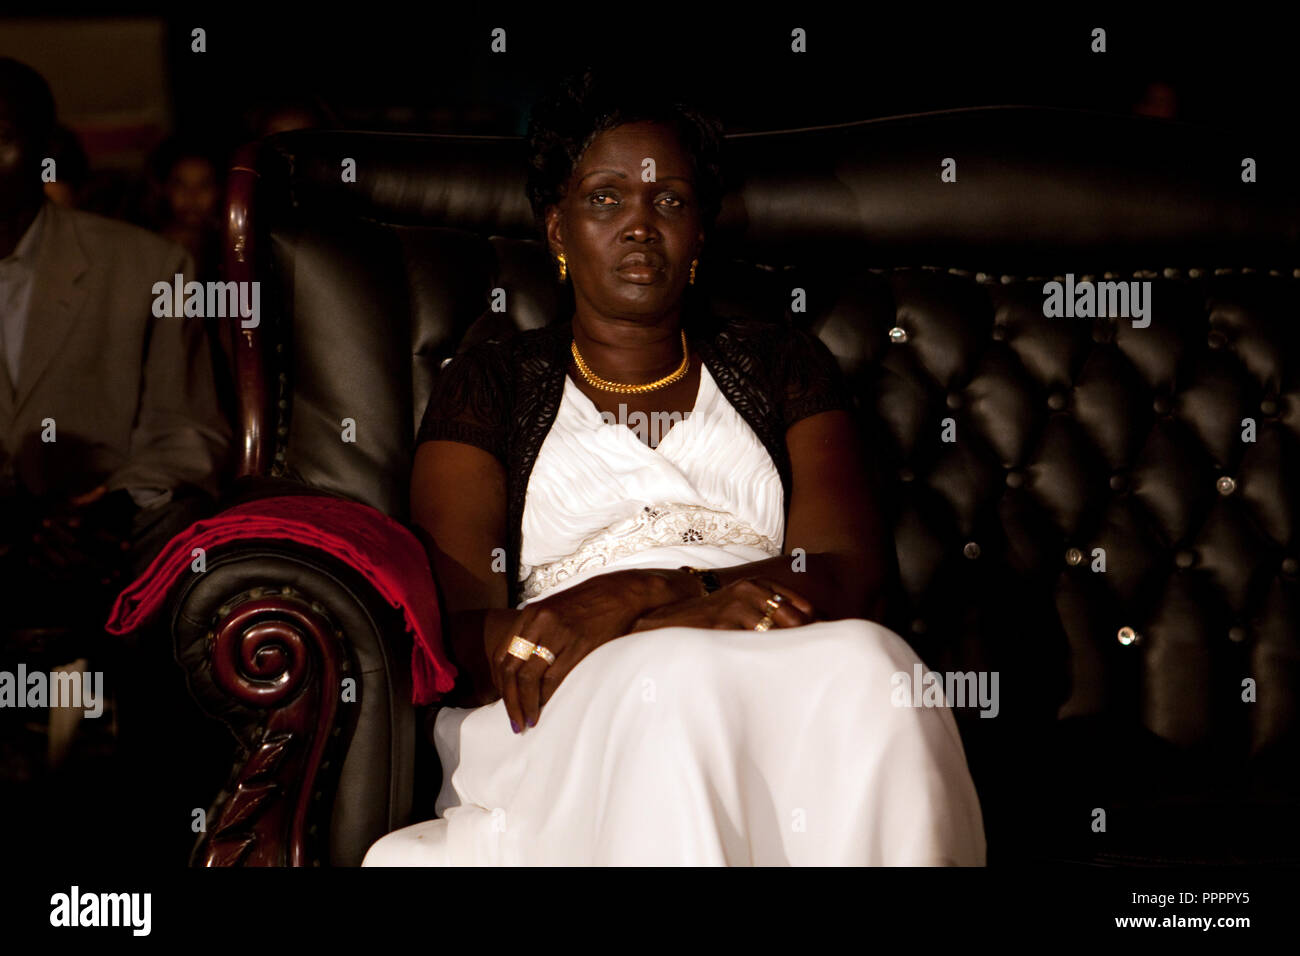 4 december 2010 - Juba, Southern Sudan - Rebecca Nyadeng Garang, the wife of John Garang de Mabior the former President of Southern Sudan and First Vice President of Sudan, attends Miss Malaika South Sudan 2010 at Nyakuron Cultural Centre Juba. The contest featured 15 women from all 10 of South Sudan's states. The event was a way to show off their talents, traditions and culture. The competition was originally put together in 2005 by the southern Sudanese diaspora living in neighbouring Kenya. The word 'Malaika' means angel in Kiswahili, spoken widely in Kenya, the country where tens of thousa - Stock Image